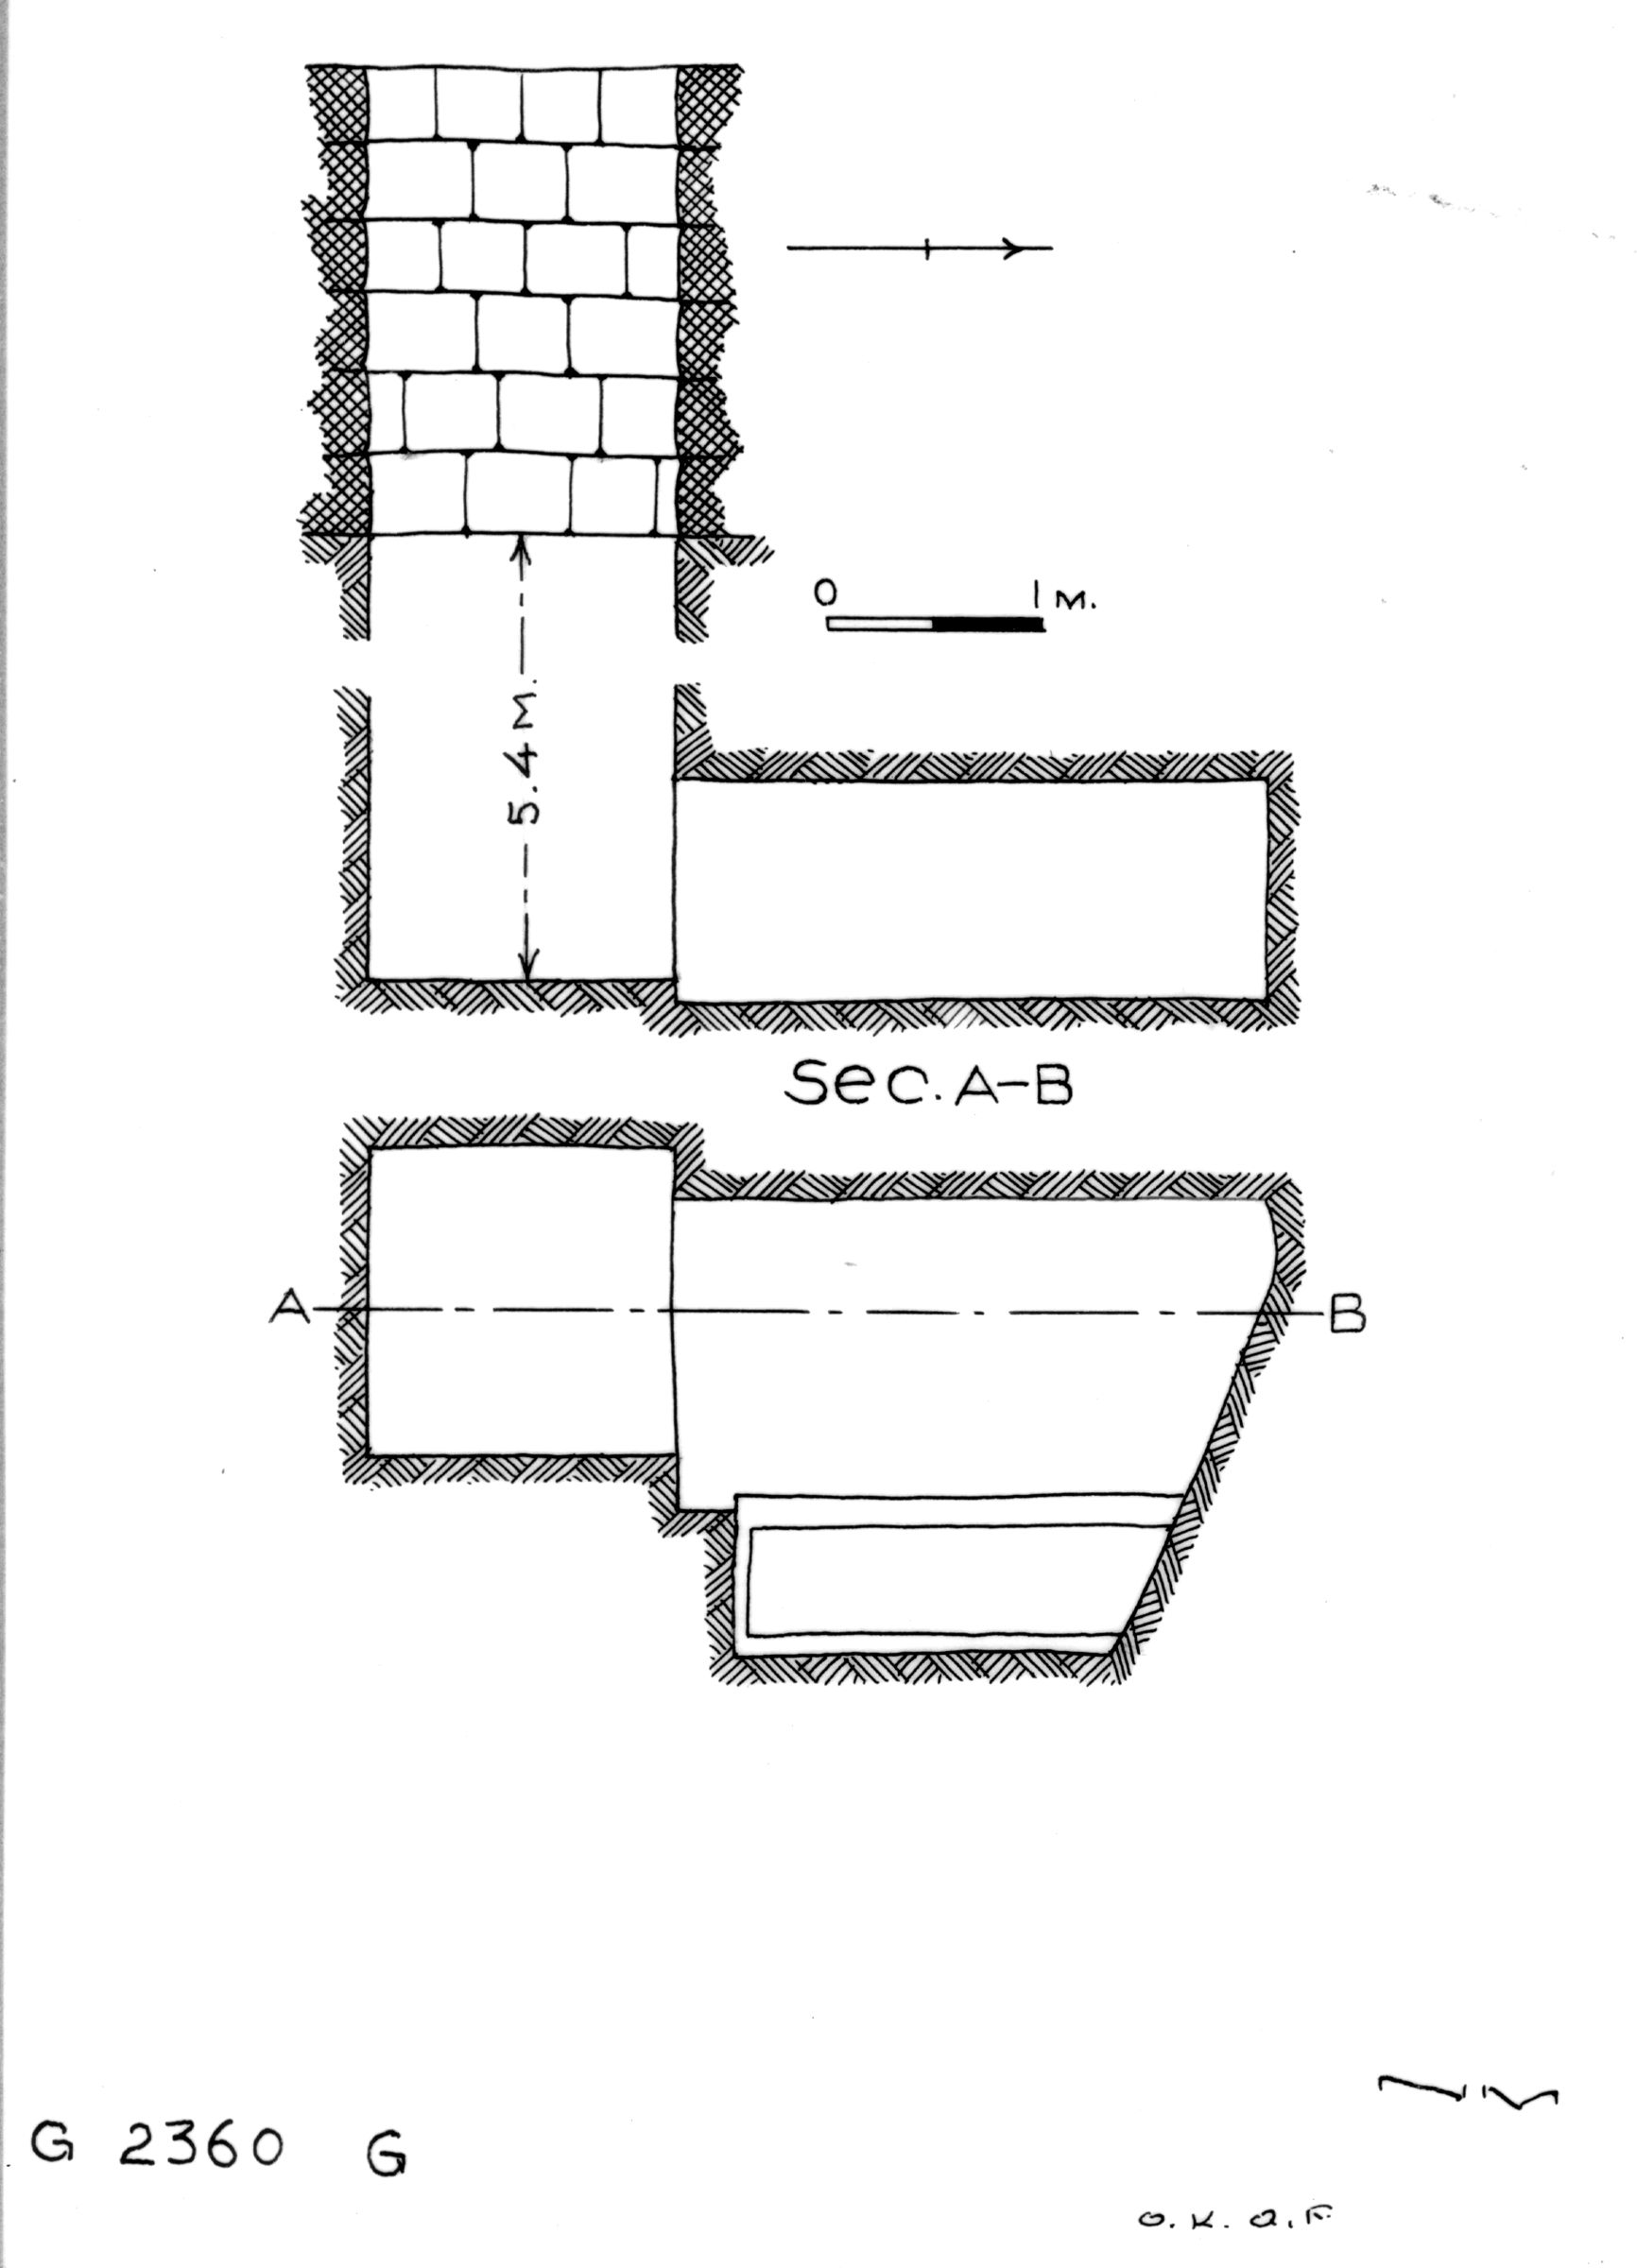 Maps and plans: G 2360, Shaft G